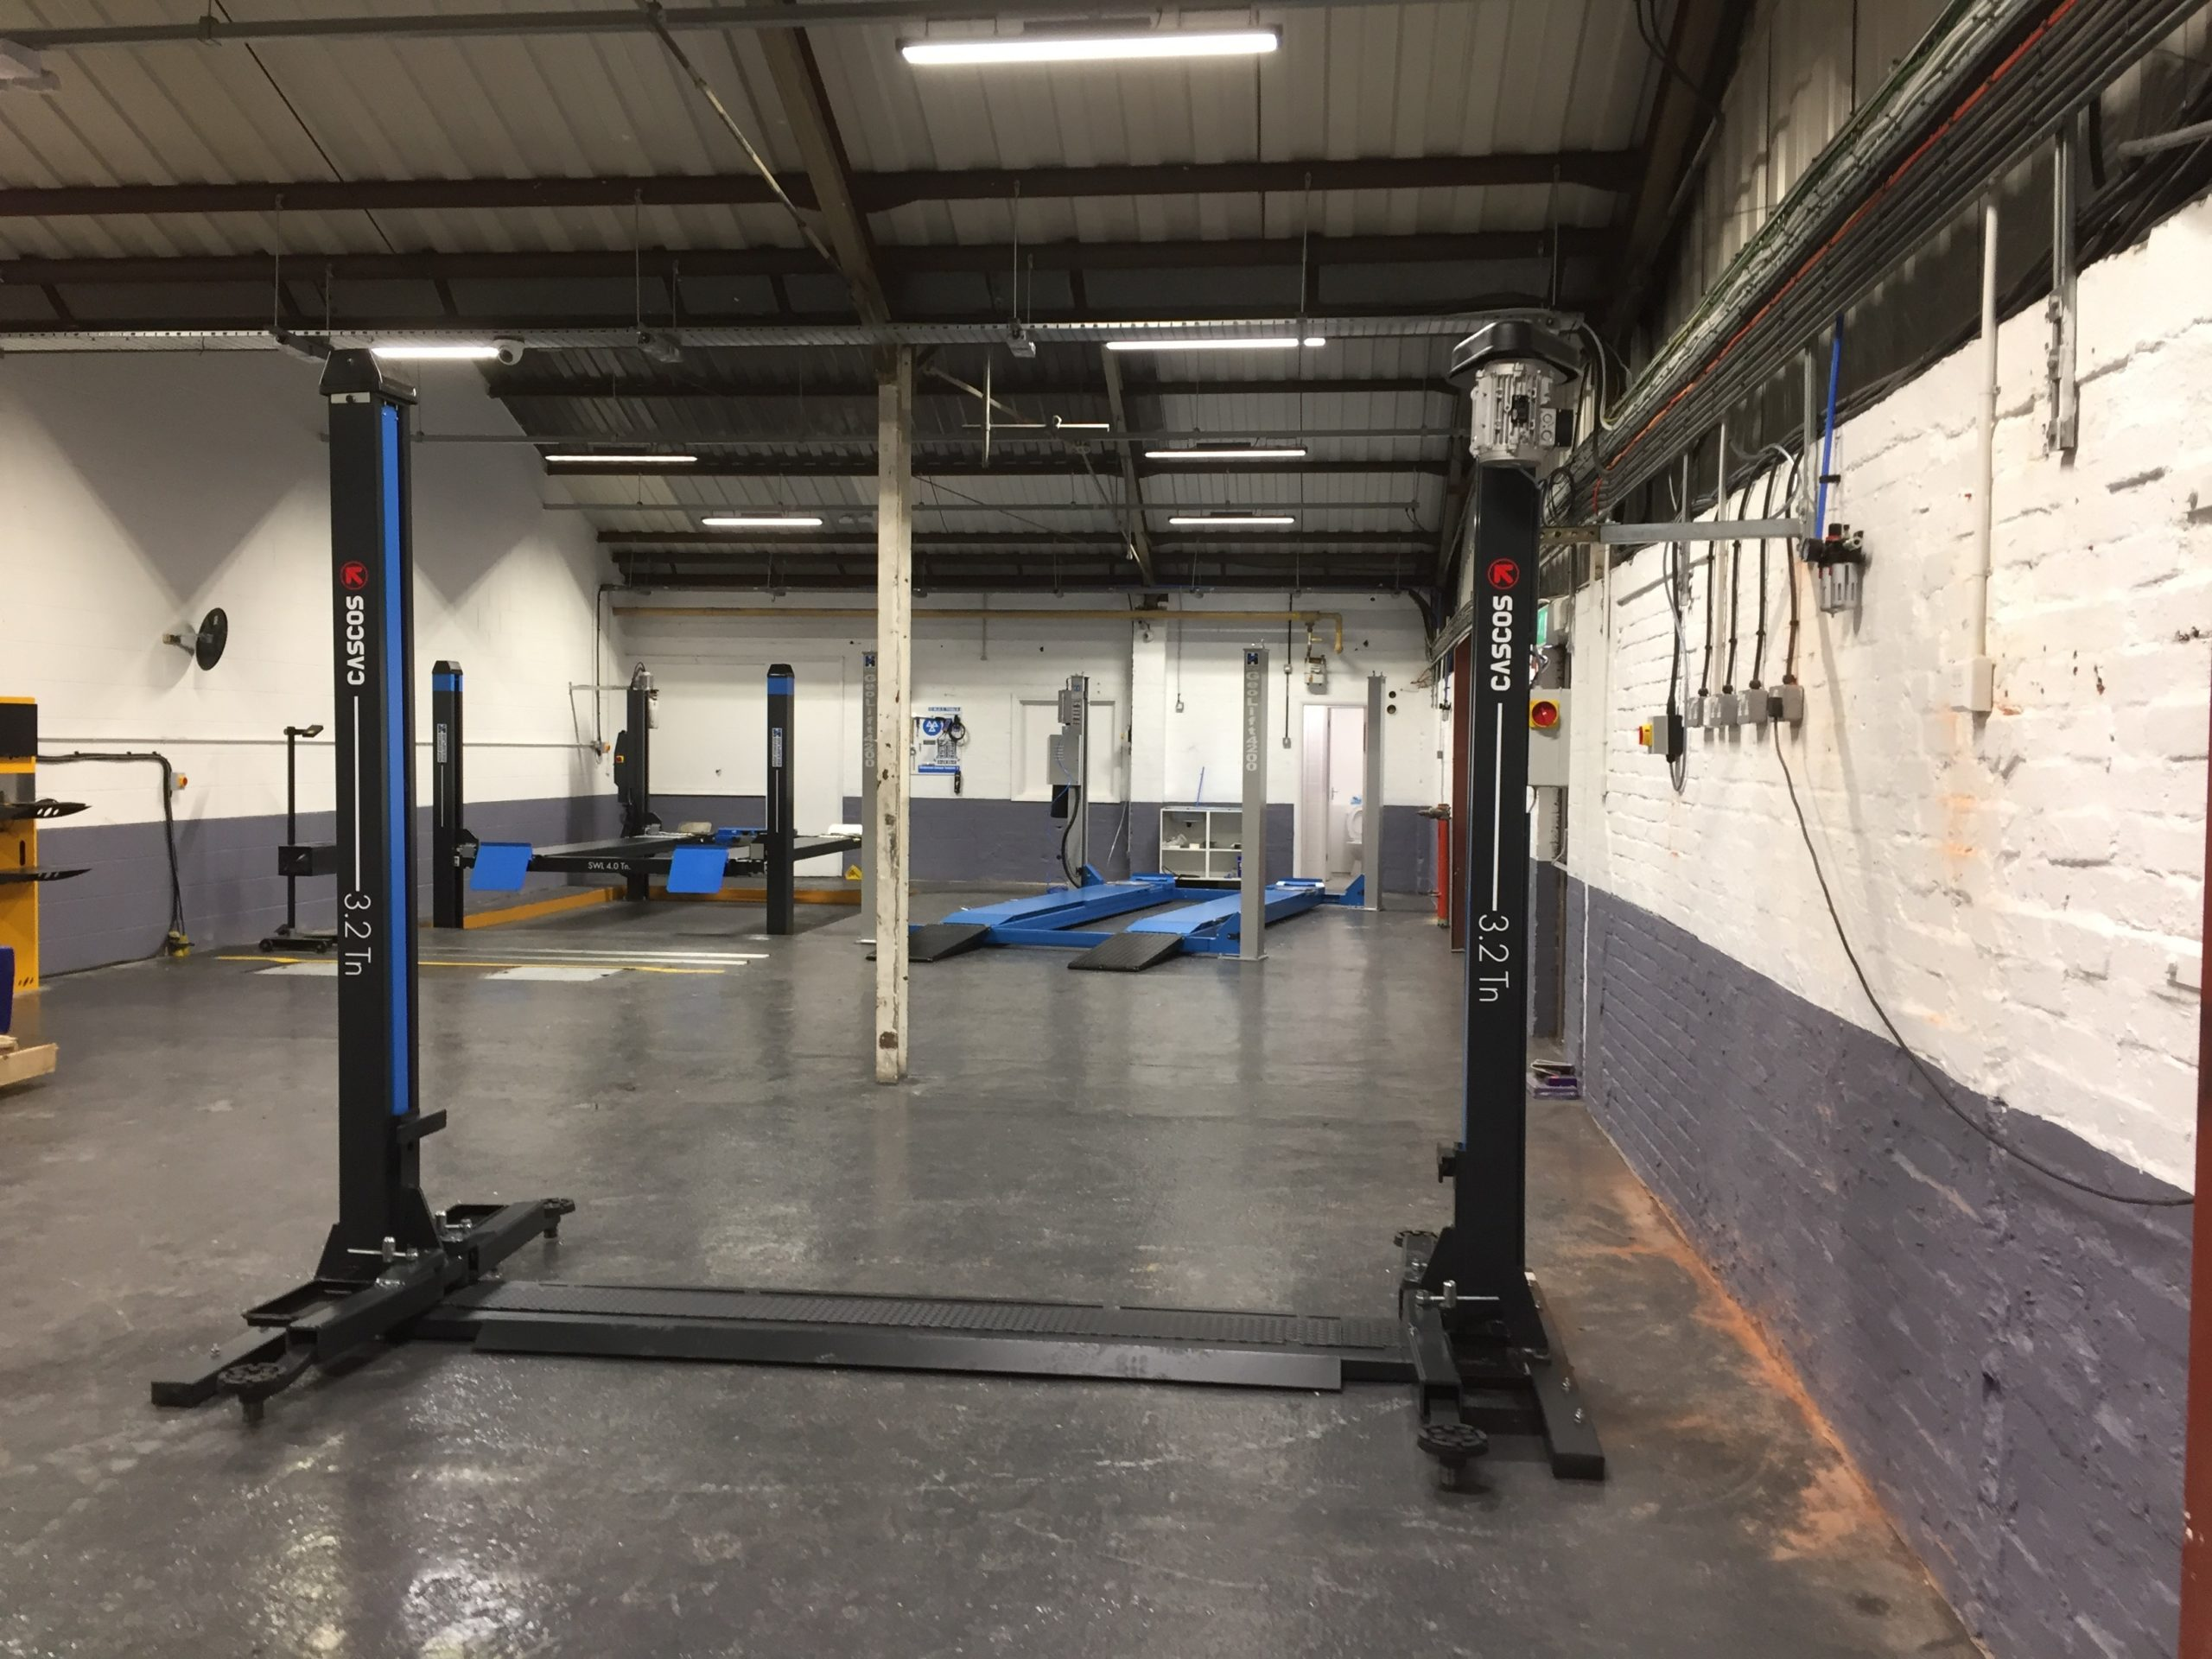 Our expert team delivered and installed all the garage lifting equipment and MOT Bay equipment, that Autotechnics in Merton needed for successful garage services.